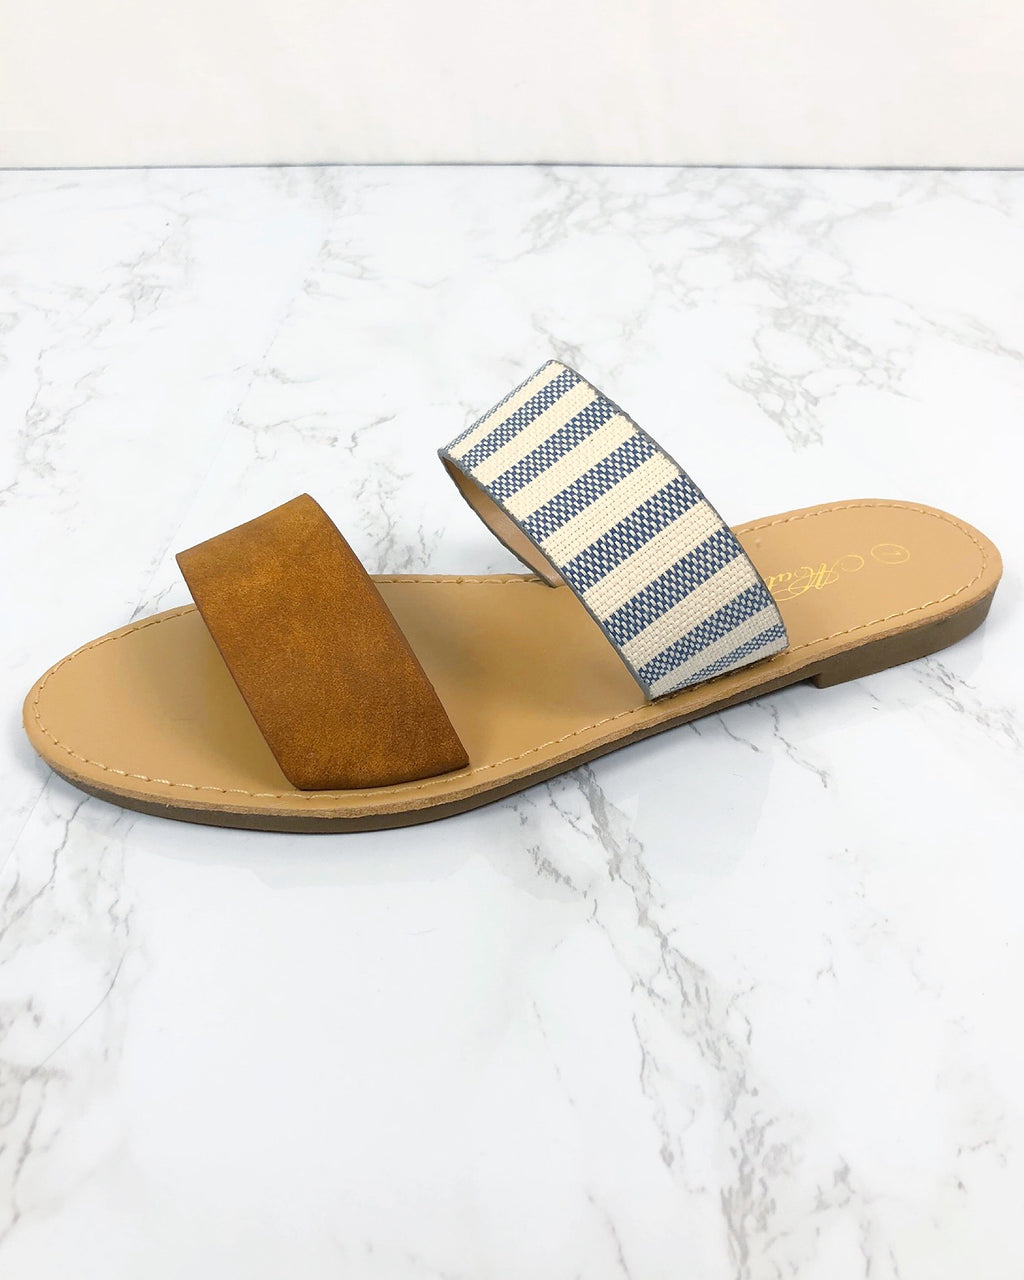 All In Stride Tan Striped Sandals - Blackbird Boutique